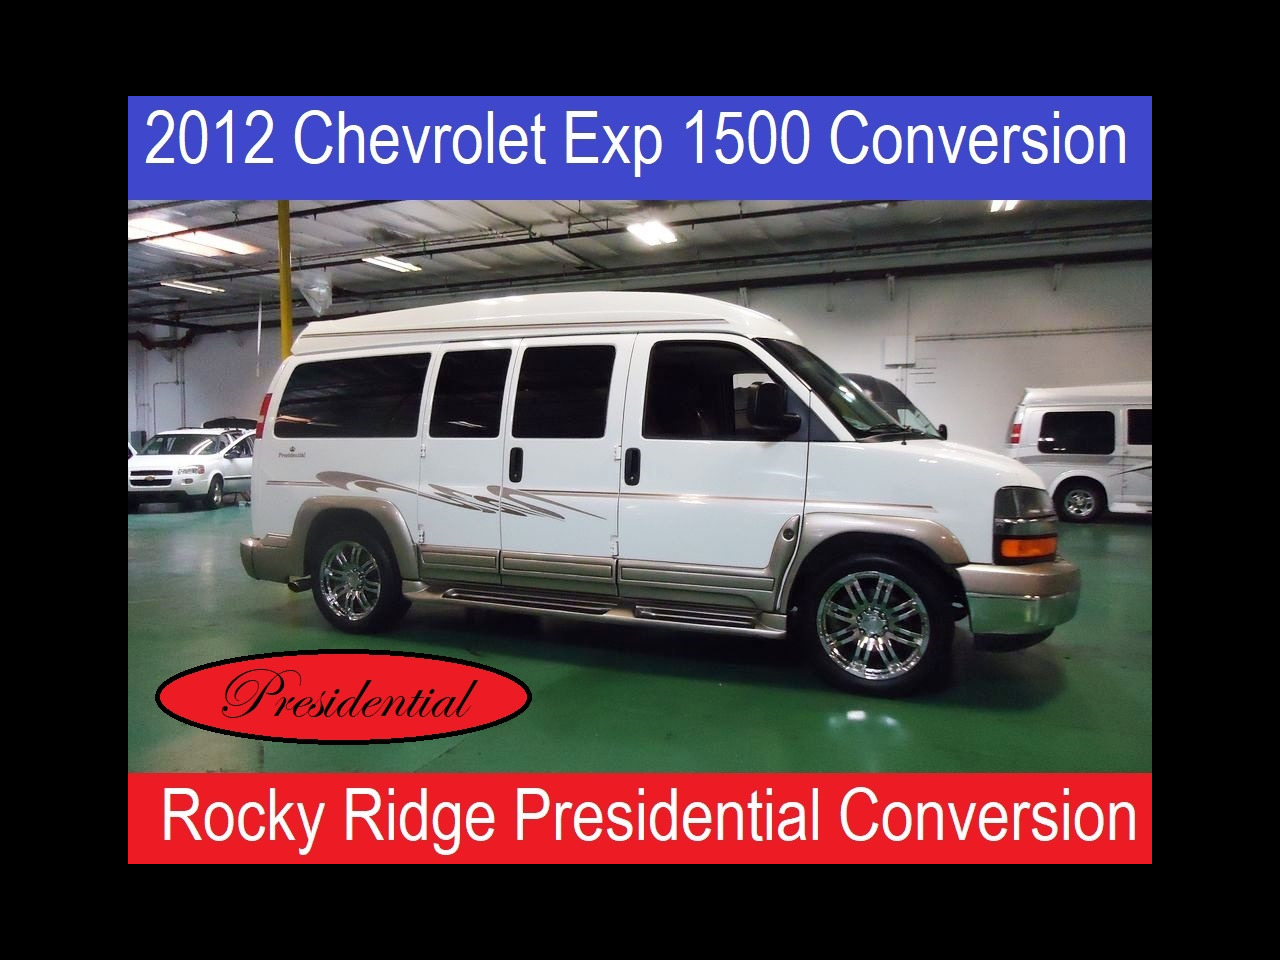 2012 Chevrolet Express Passenger Presidential Rocky Ridge Conversion Van